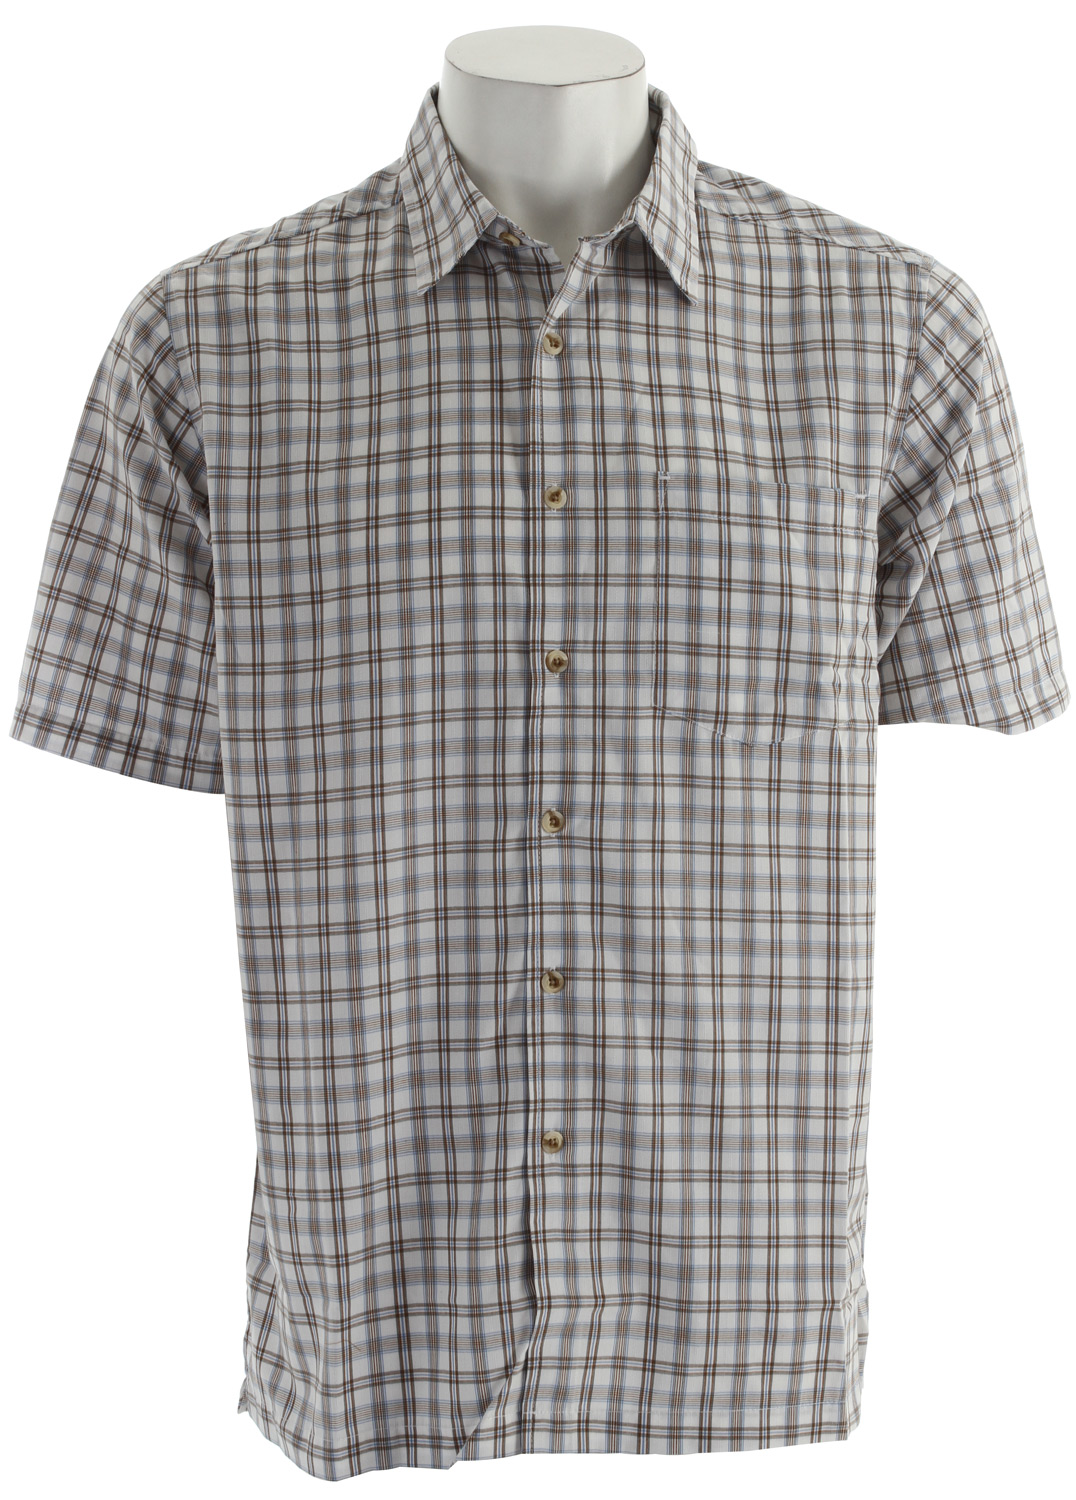 "Moisture-wicking, antimicrobial, odor-preventing, and sun-protective, the South Hampton Short Sleeve Shirt is designed with sustainable Bamboo-rich fabric that will keep you comfortable and dry.Key Features of the White Sierra Richmond Point Shirt: 49% polyester 49% bamboo rayon 2% cotton dobby plaid woven Sun protection fabric Wicking Pigment garment dyed Garment silicone and enzyme washed for softness 31.5"" back length - $26.95"